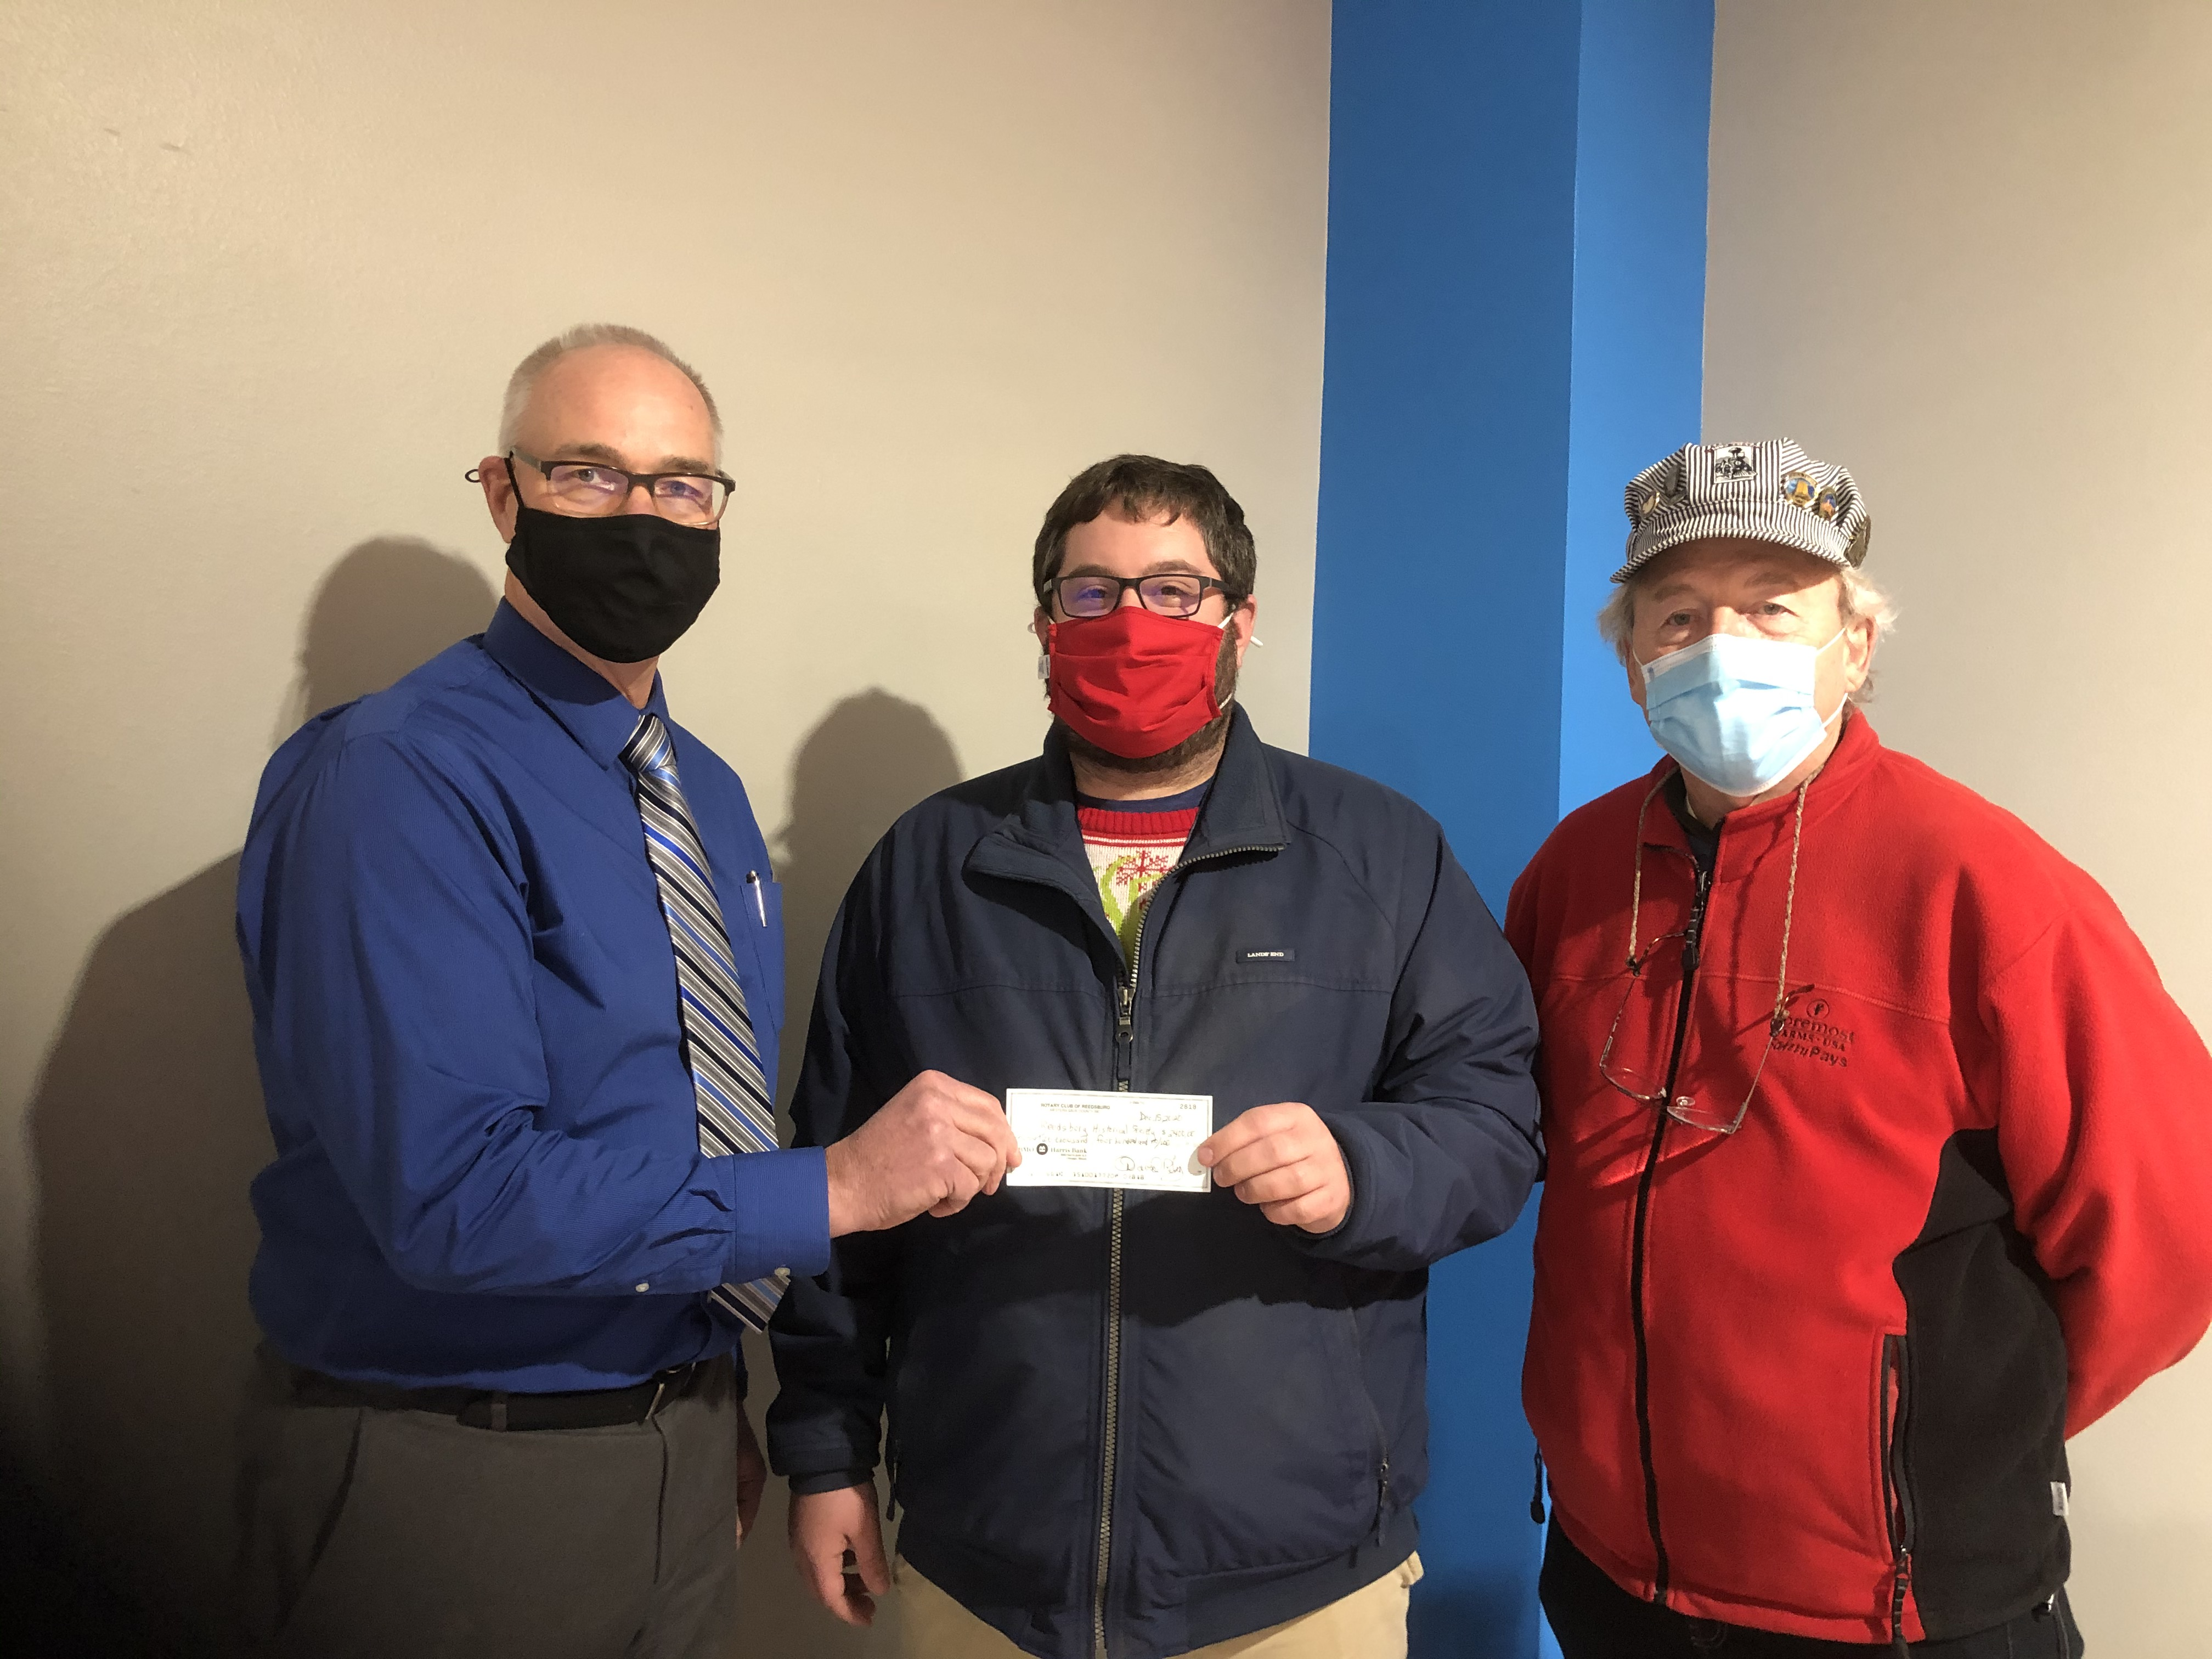 Joel Groskreutz, president of the Rotary Club of Reedsburg Western Sauk County, presents a $2,400 check to President Craig Braunschweig and Treasurer Lou Kirt of the Reedsburg Area Historical Society.